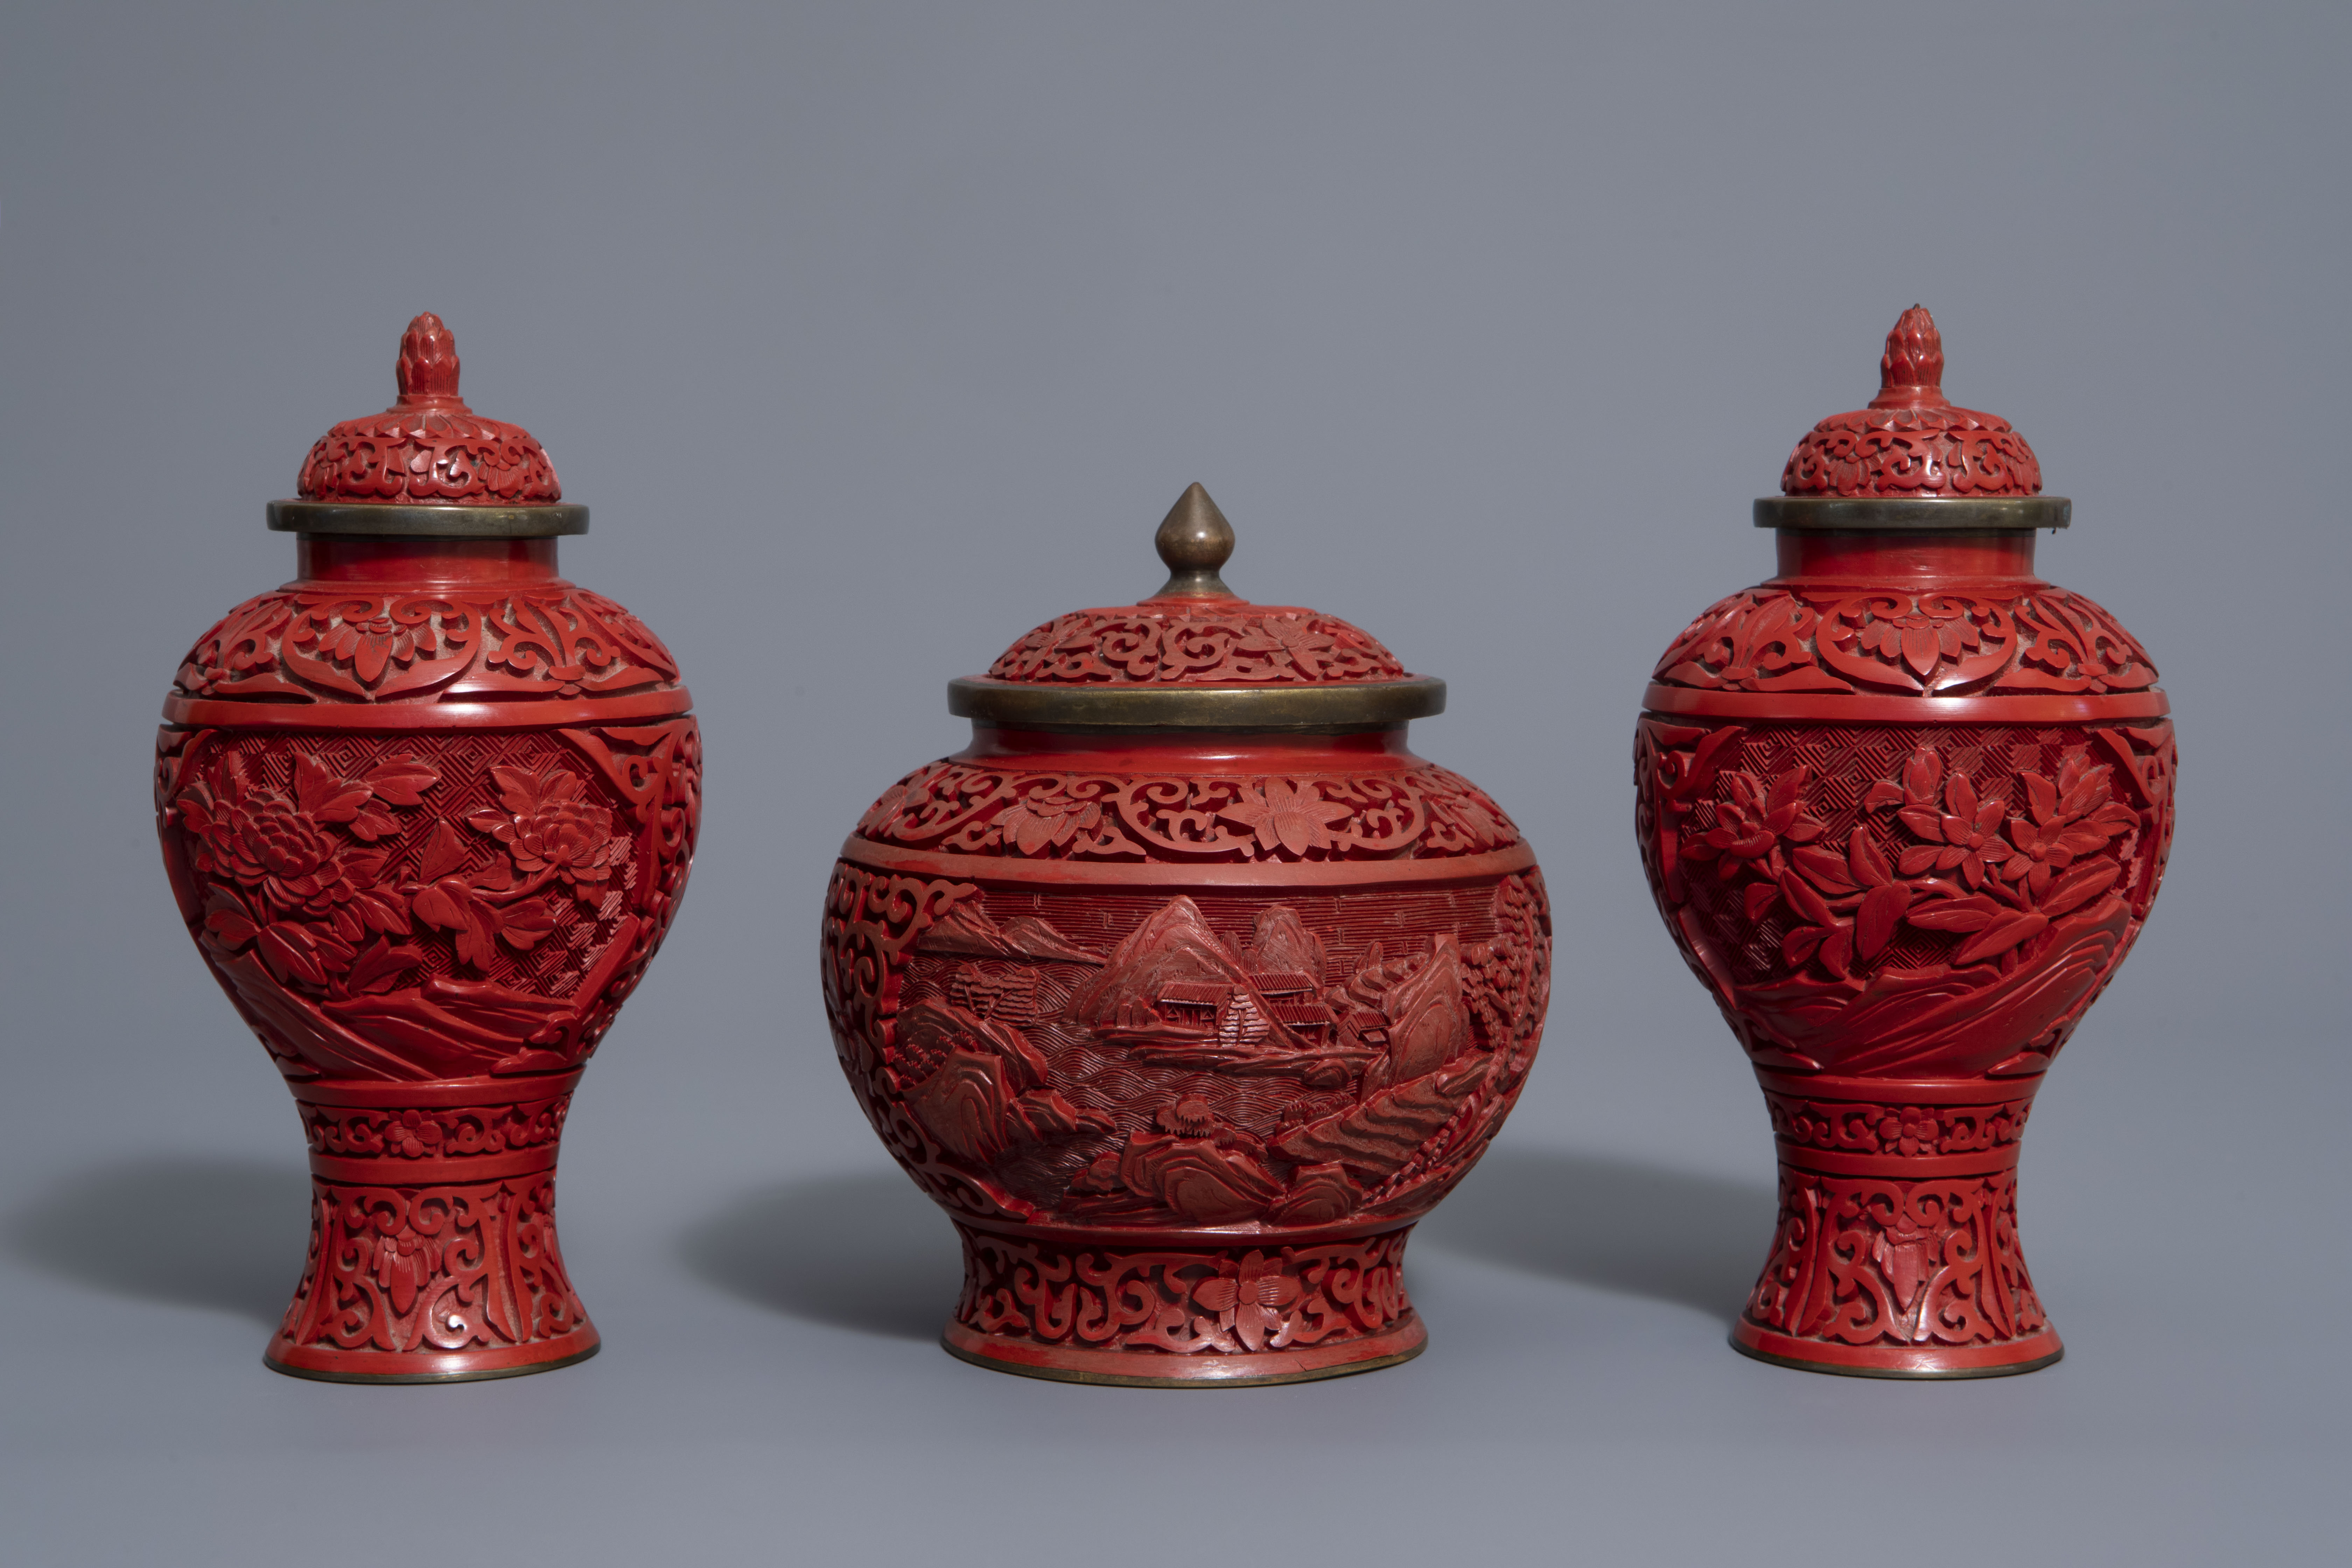 A Chinese tea block, cloisonné teapot, wall vase, bamboo brush pot & 3 red lacquer vases, 20th C. - Image 2 of 16